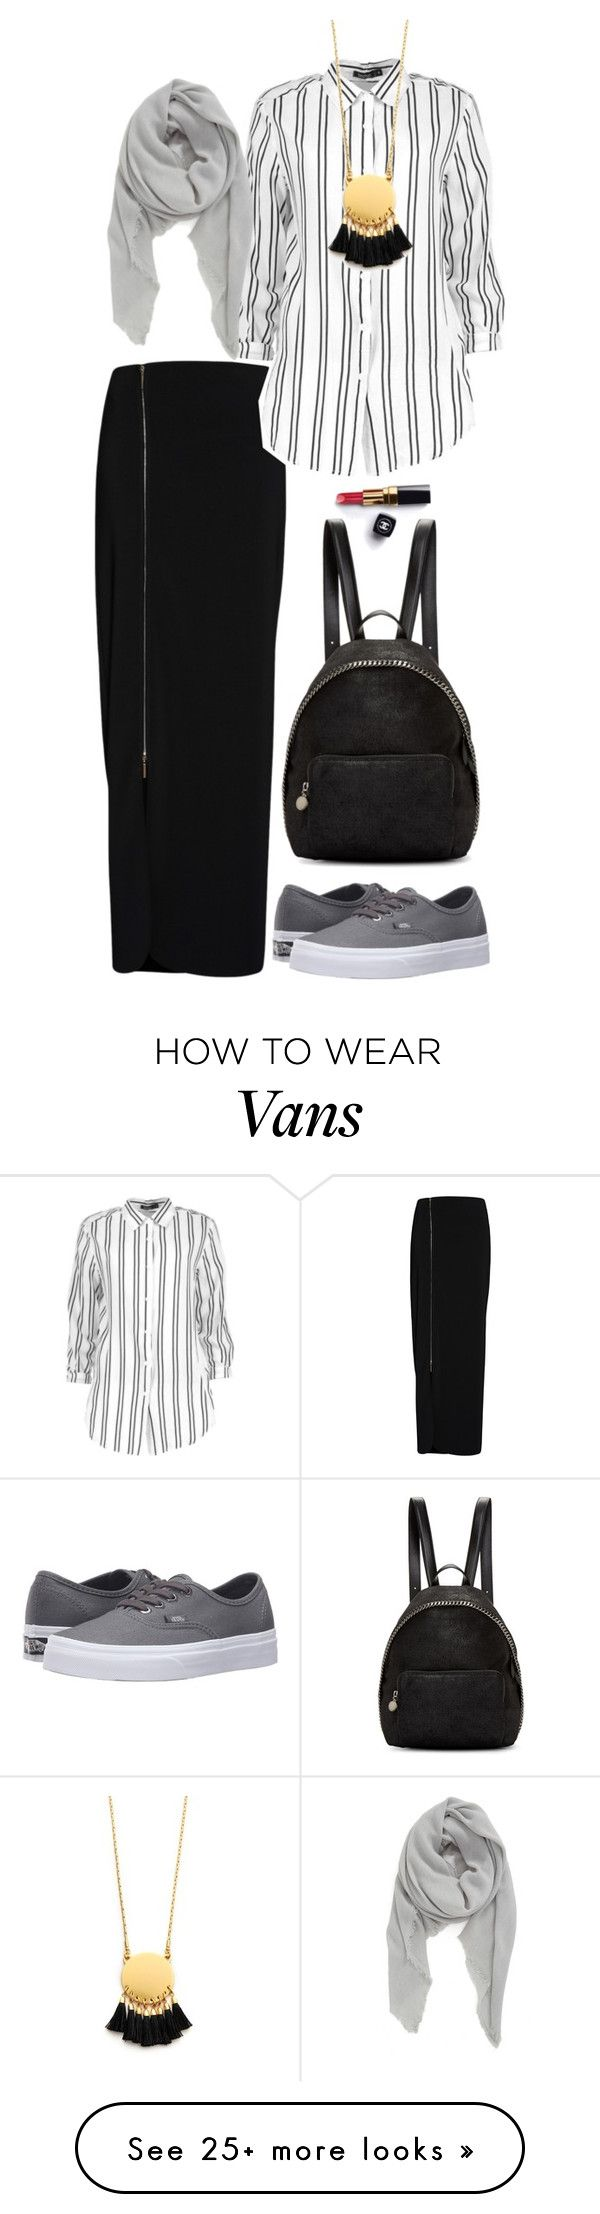 """Hijab luv"" by www-som on Polyvore featuring Gina Bacconi, Boohoo, Madewell, STELLA McCARTNEY, Vans, Chanel and BP."